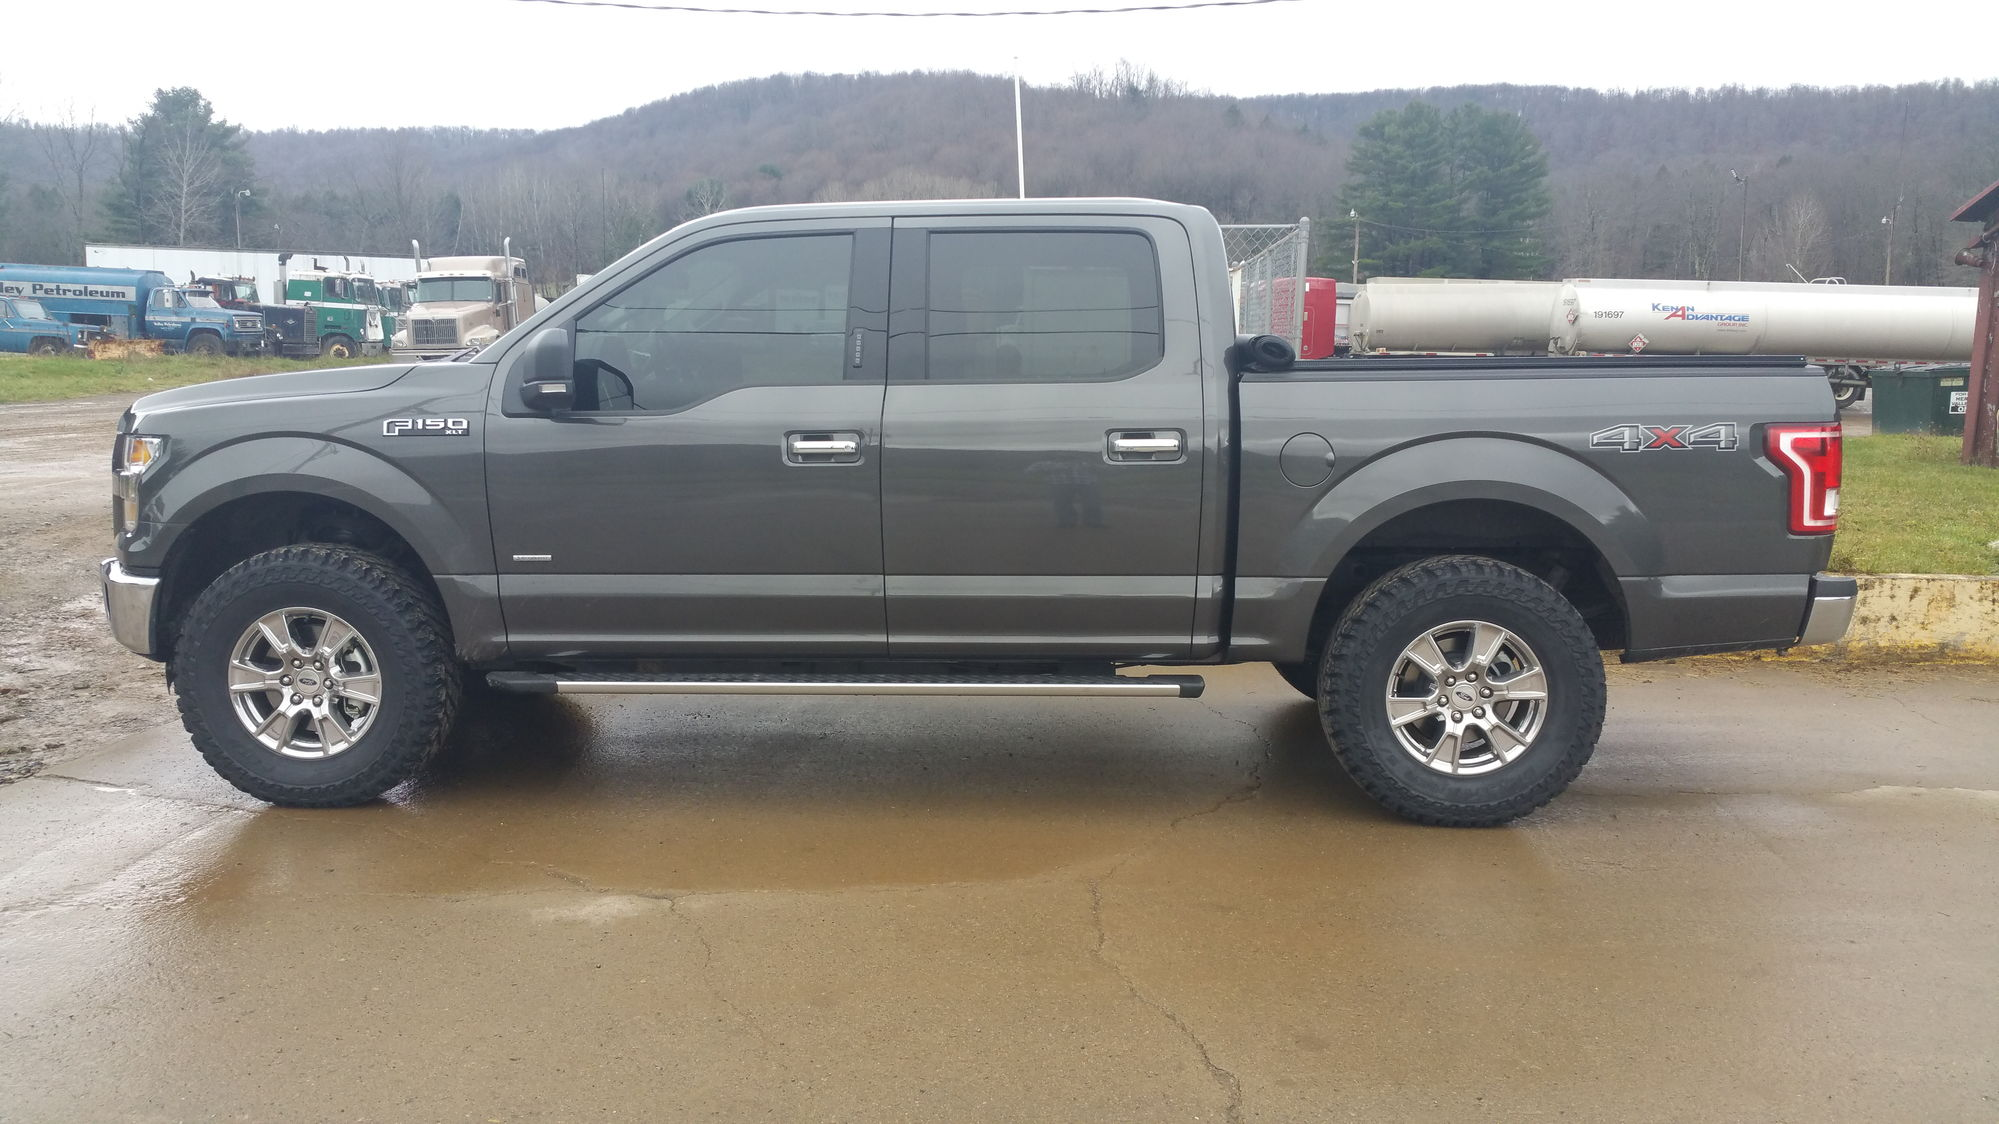 Post 2015+ XLT pictures ! - Page 21 - Ford F150 Forum ...